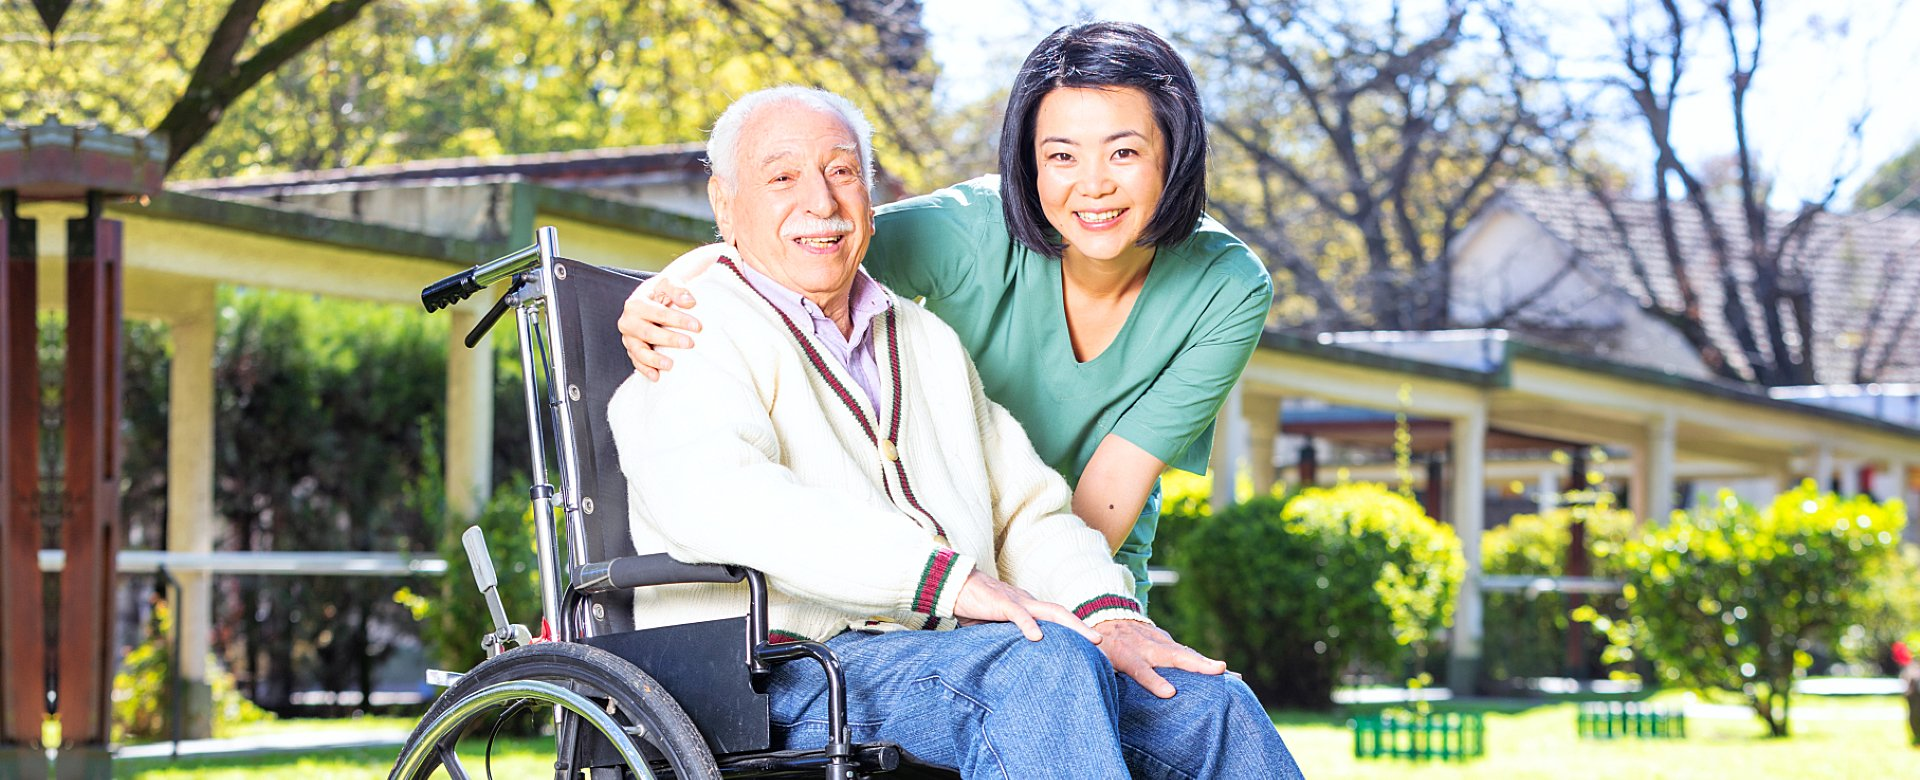 caregiver and elder man in a wheelchair smiling